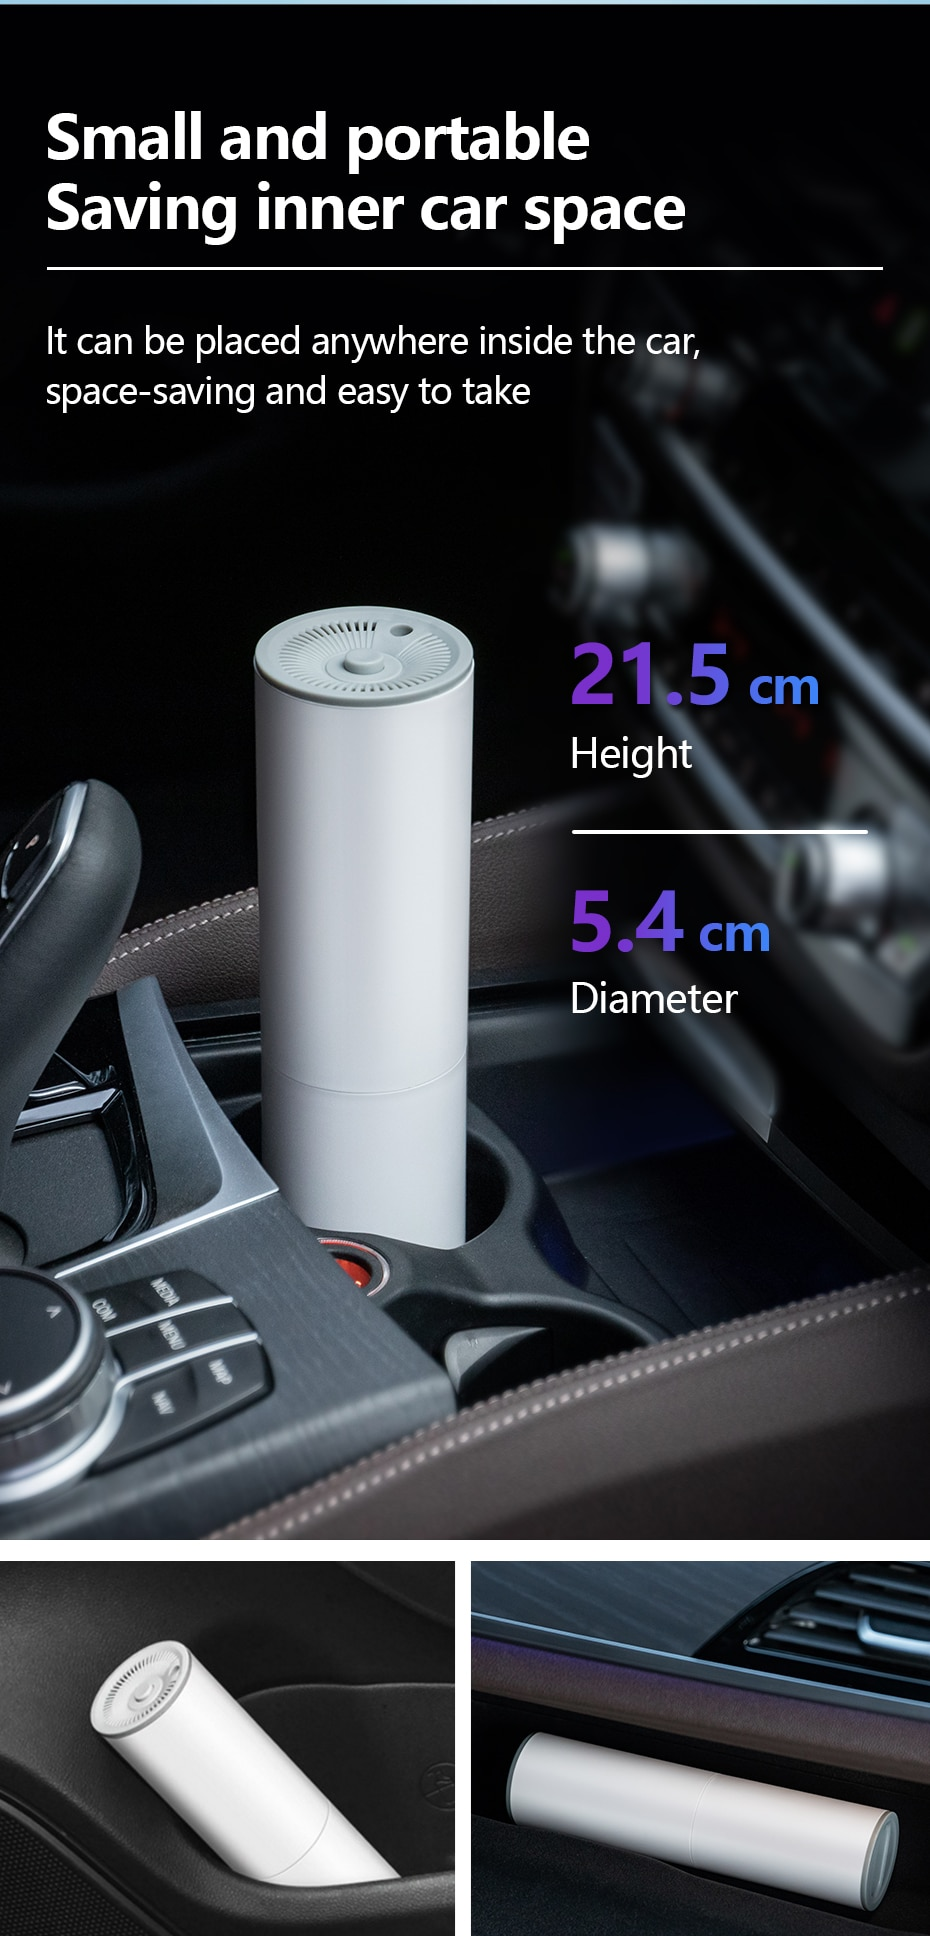 Wireless Portable Car Vacuum Cleaner Handheld Auto Vaccum 7000PA 120W High Suction For Home Cleaning Wet Dry Mini Vacuum Cleaner